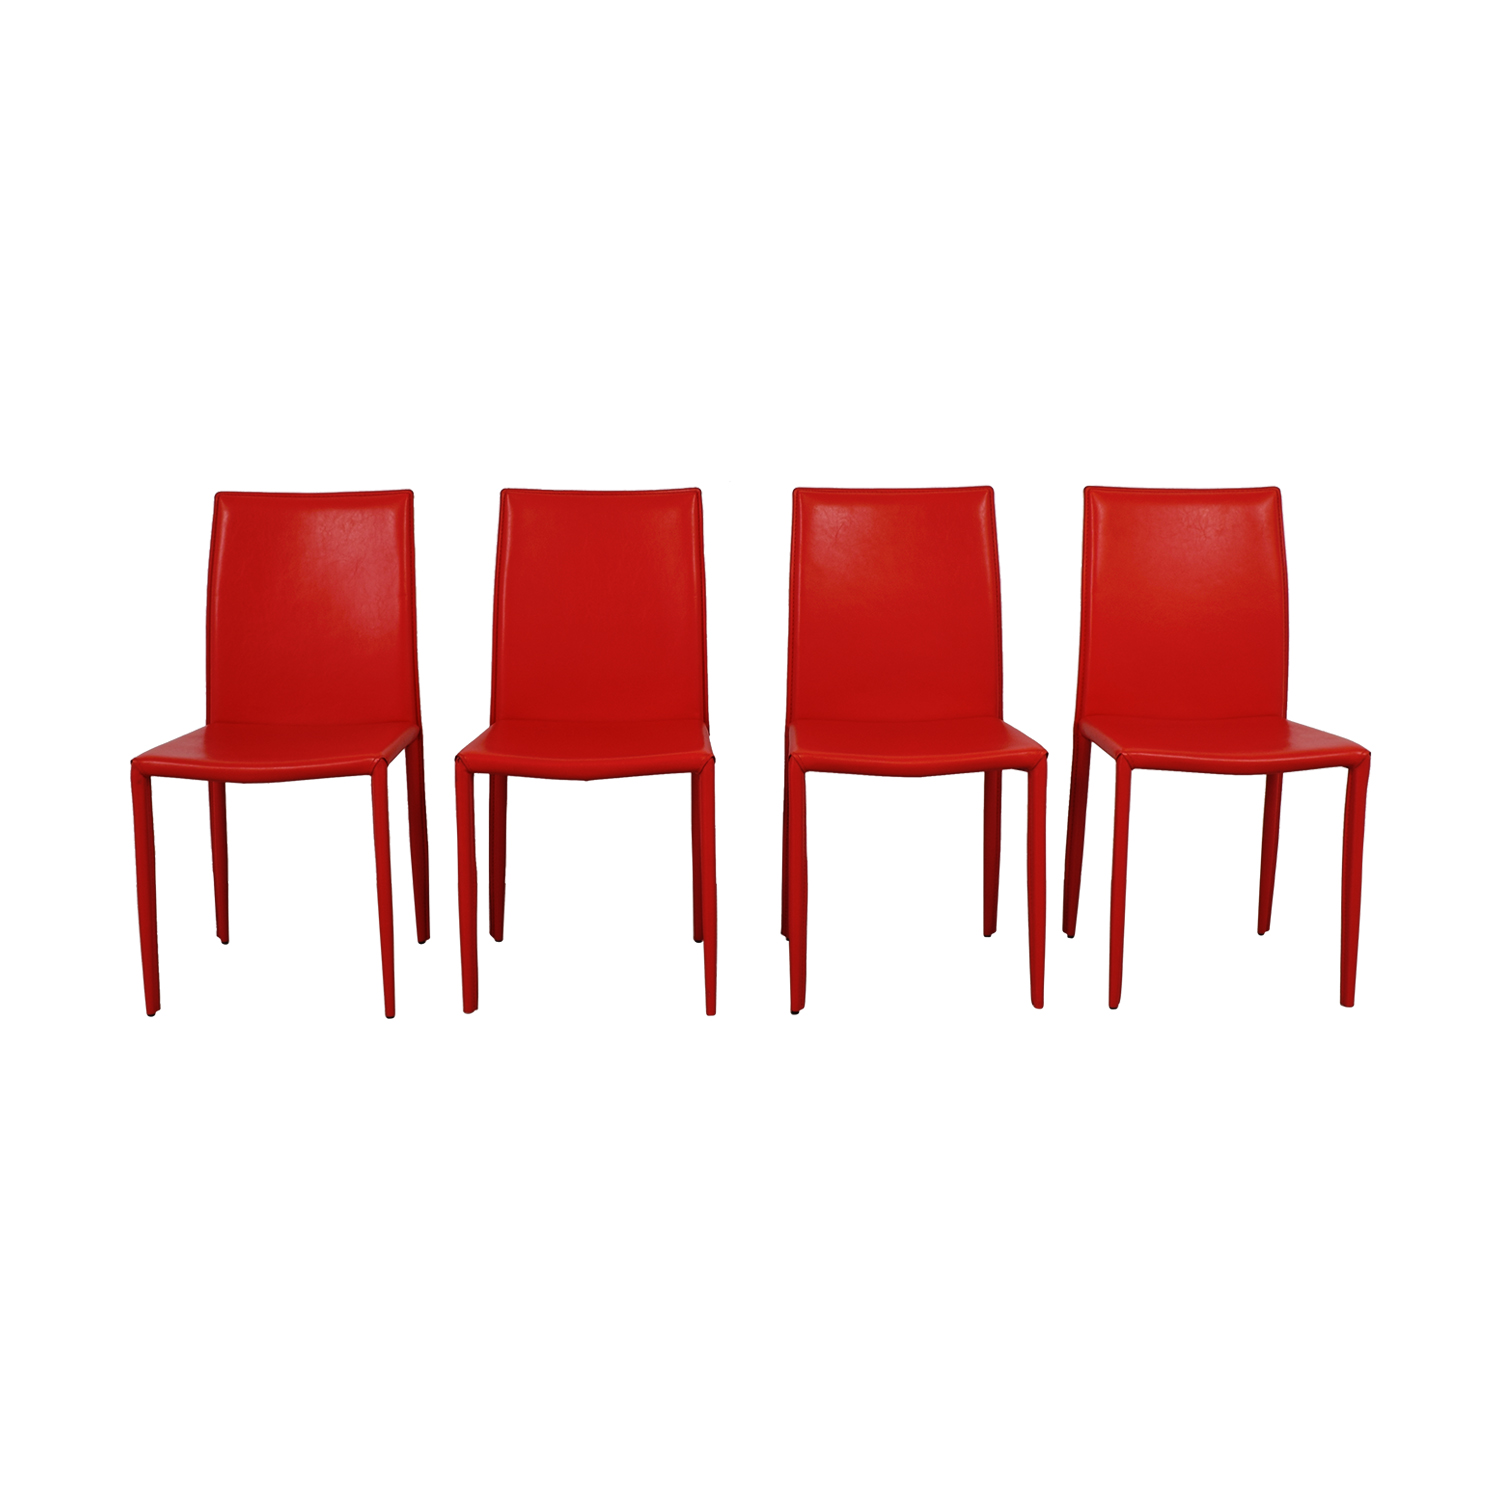 Safaviah Safaviah Red Leather Chairs second hand